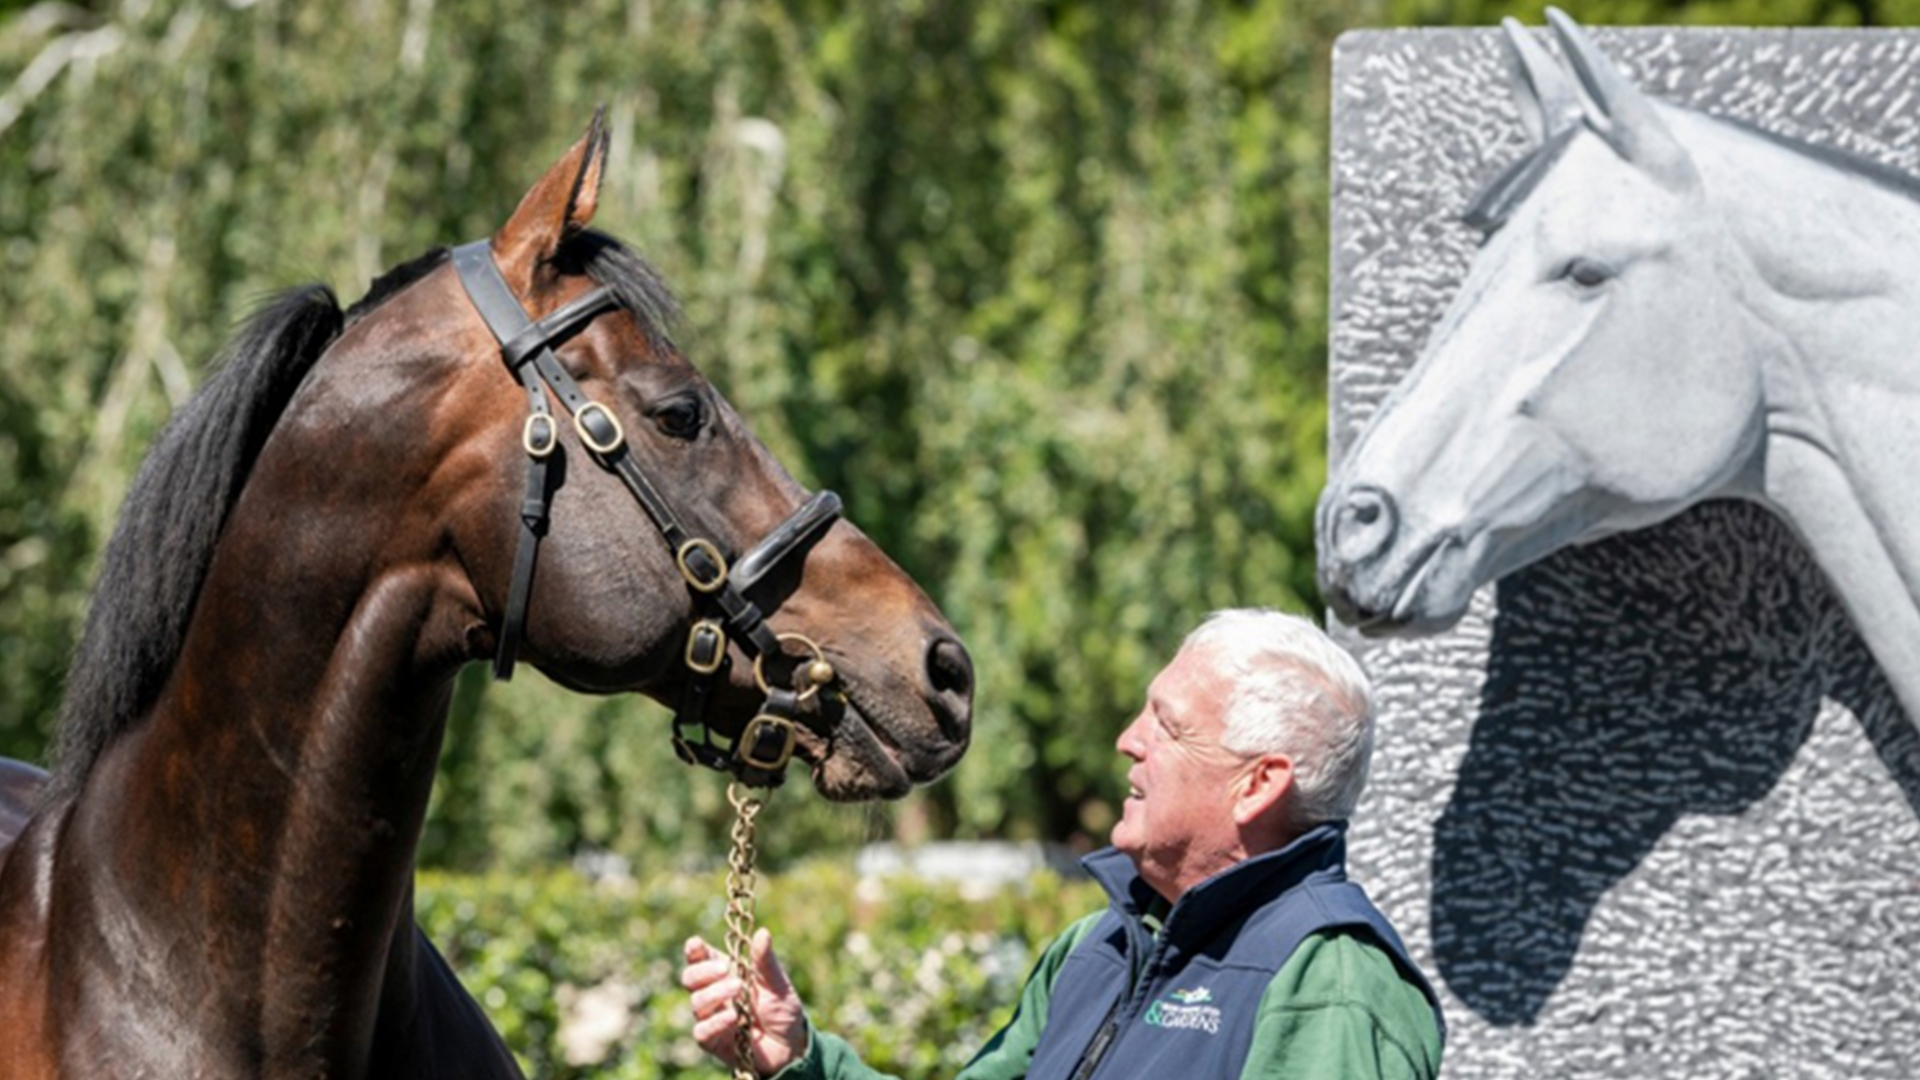 The Irish Racehorse Experience